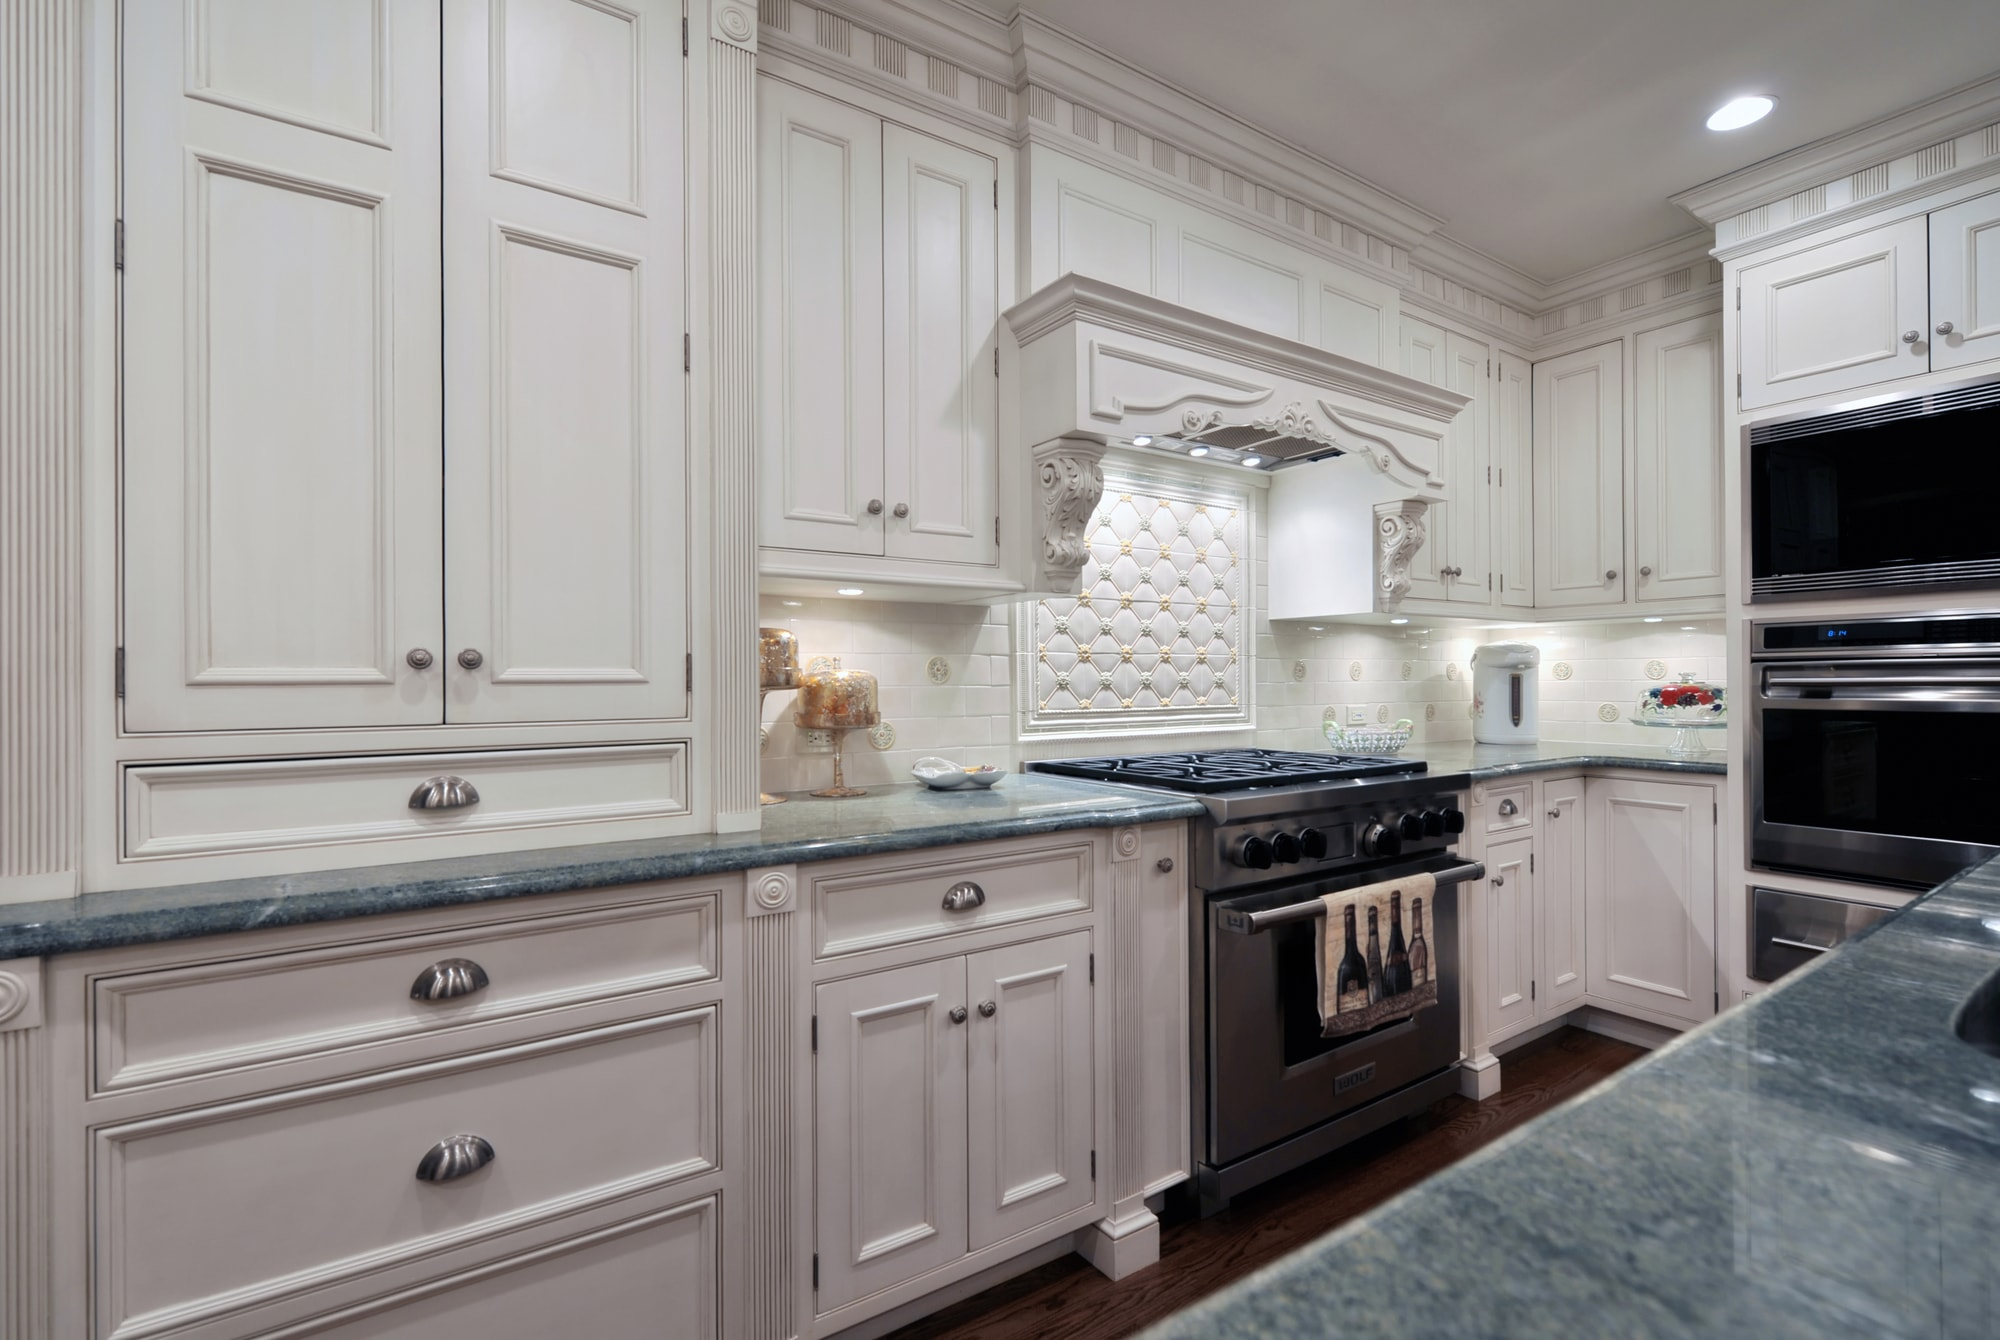 Traditional style kitchen with wide closed cabinets and drawers